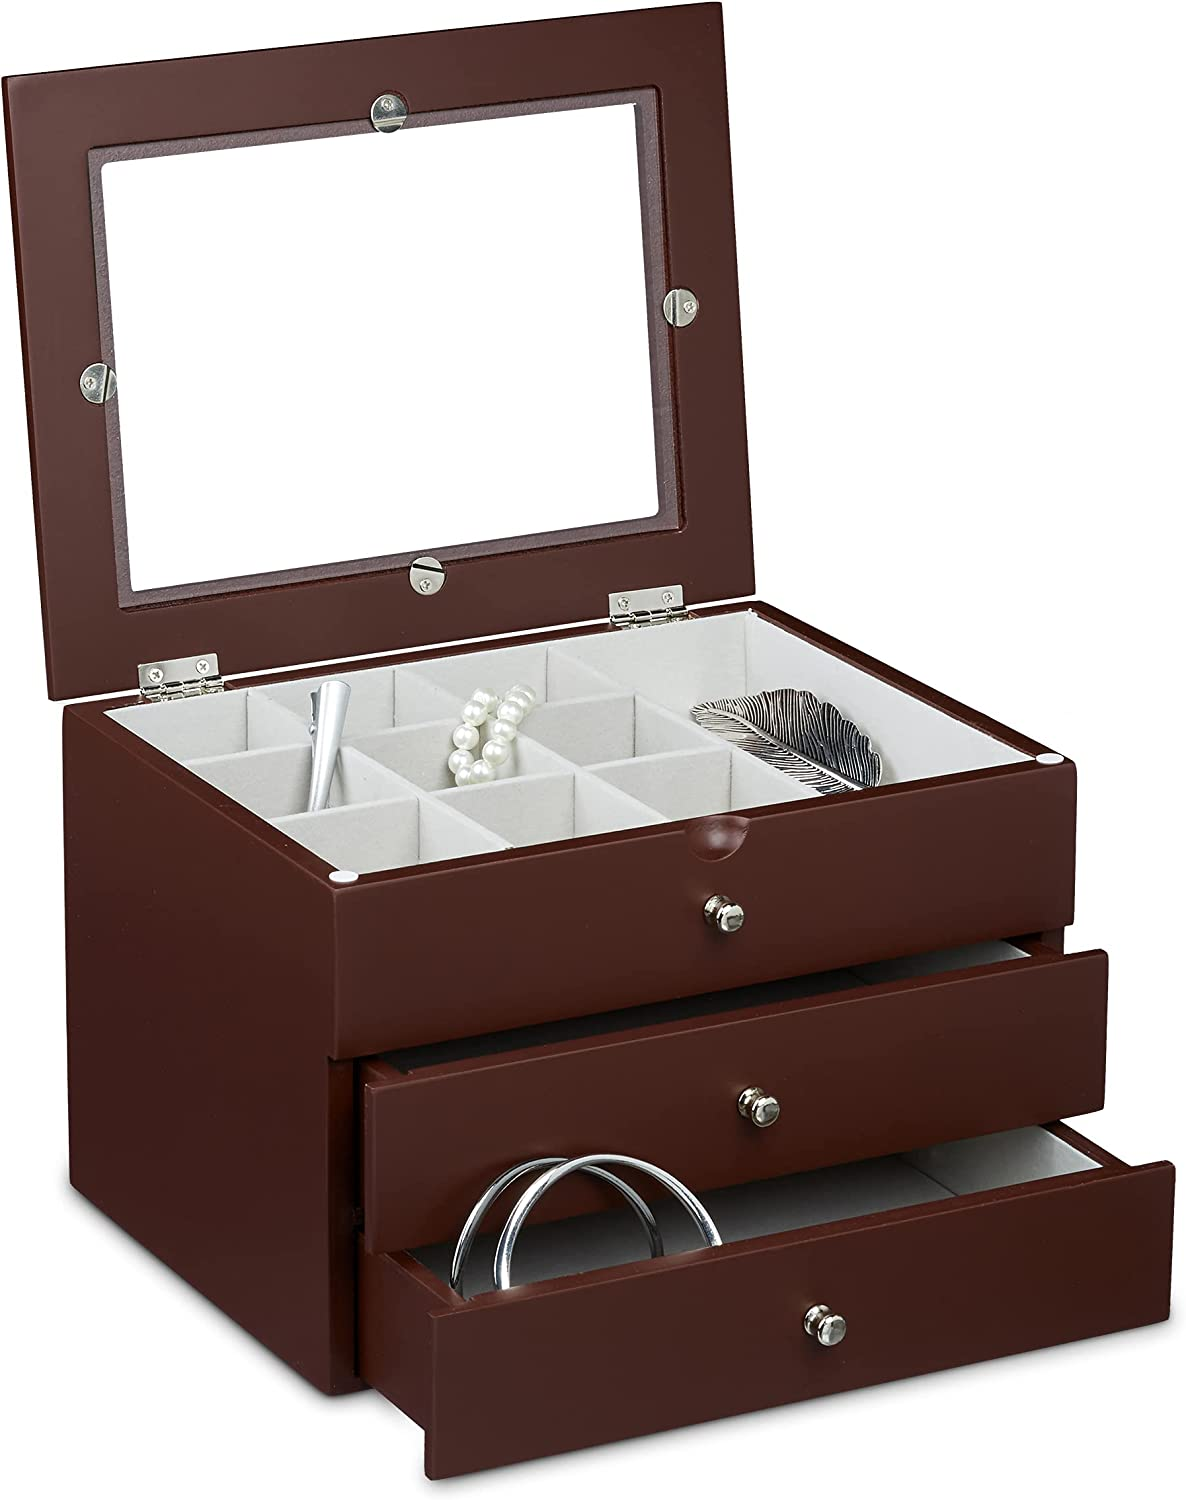 Year-end annual account Relaxdays Size: 17 x 25.5 21 Windo w cm Jewelry Elegant Super popular specialty store Chest